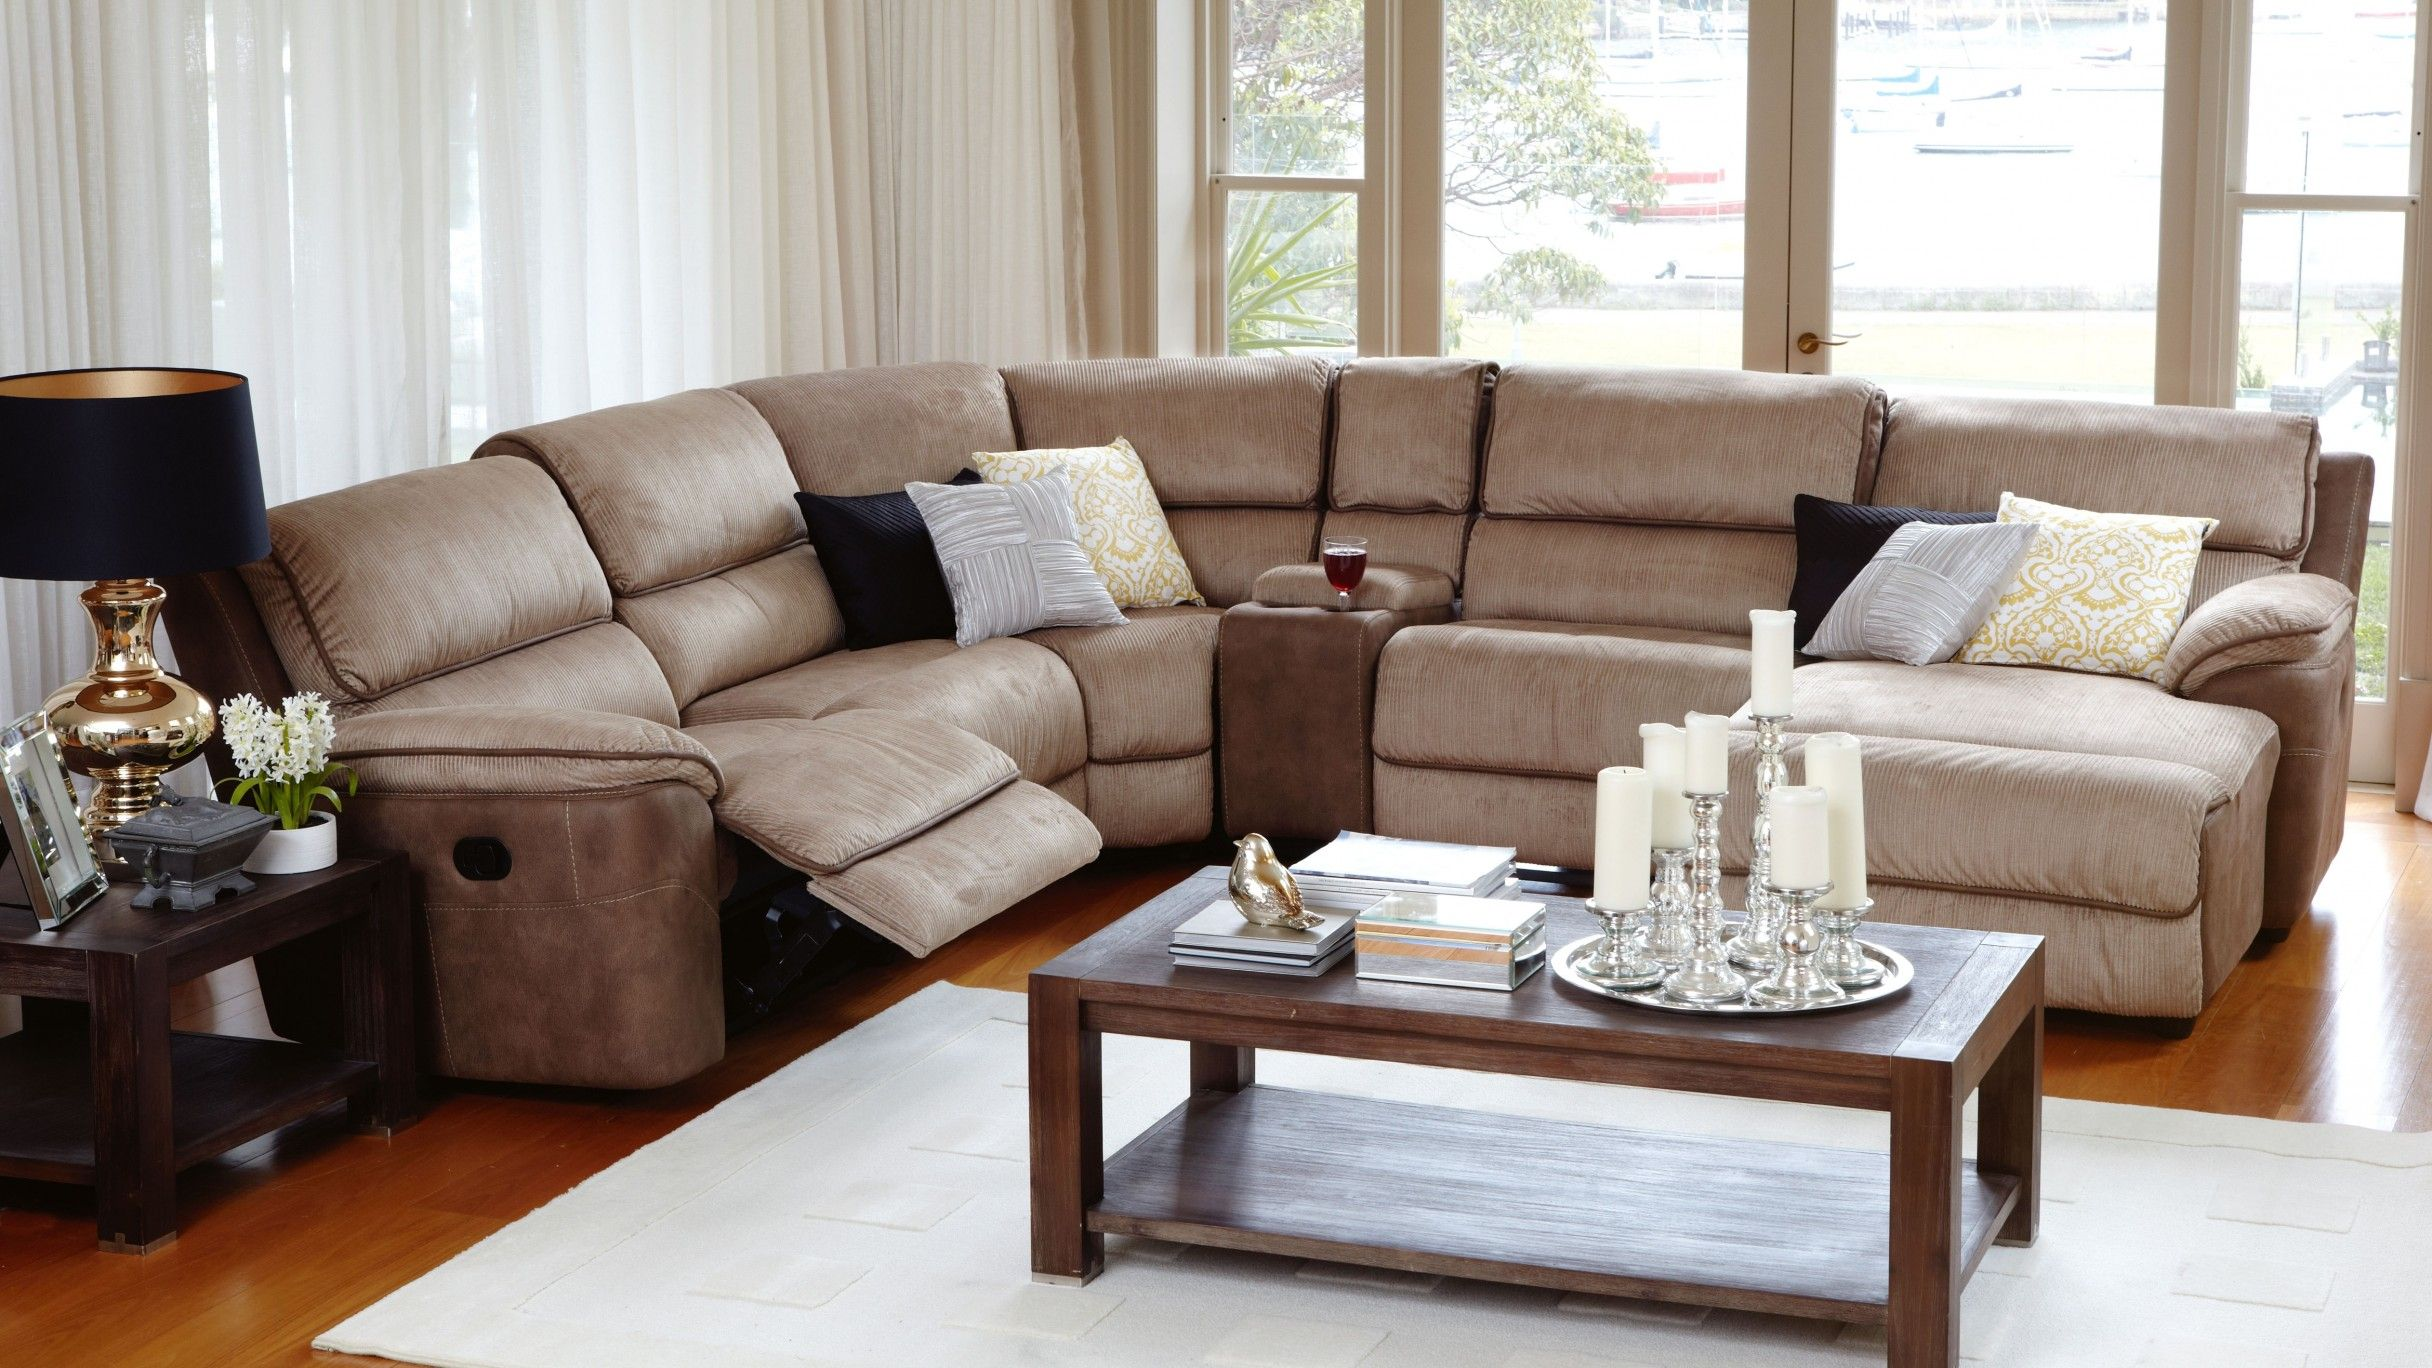 Bourbon modular lounge suite with recliner and chaise for Living room suites furniture